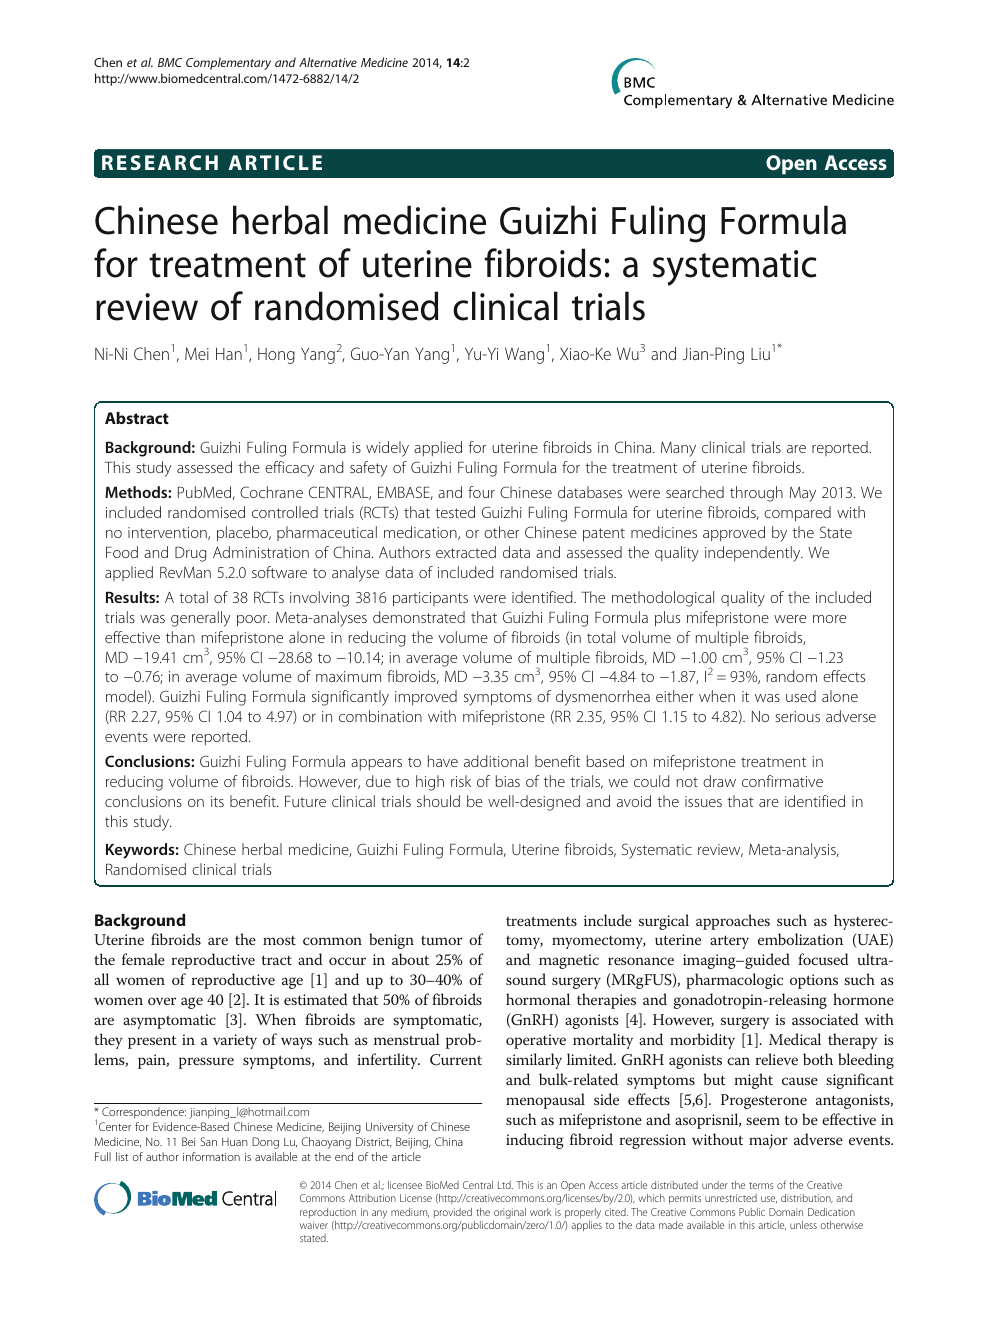 Chinese herbal medicine Guizhi Fuling Formula for treatment of